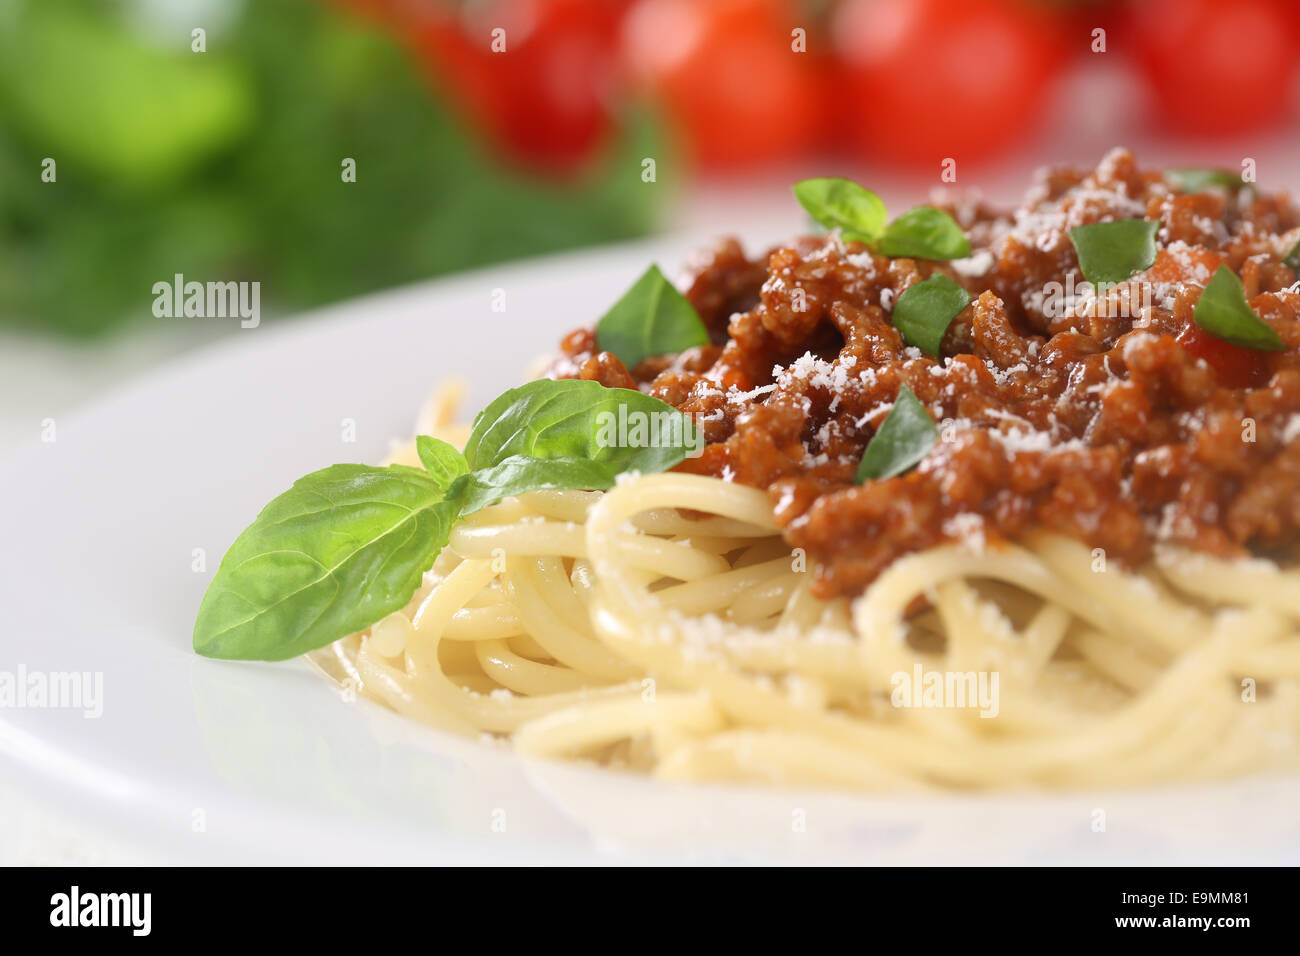 Spaghetti Bolognese noodles pasta meal with tomatoes on a plate - Stock Image